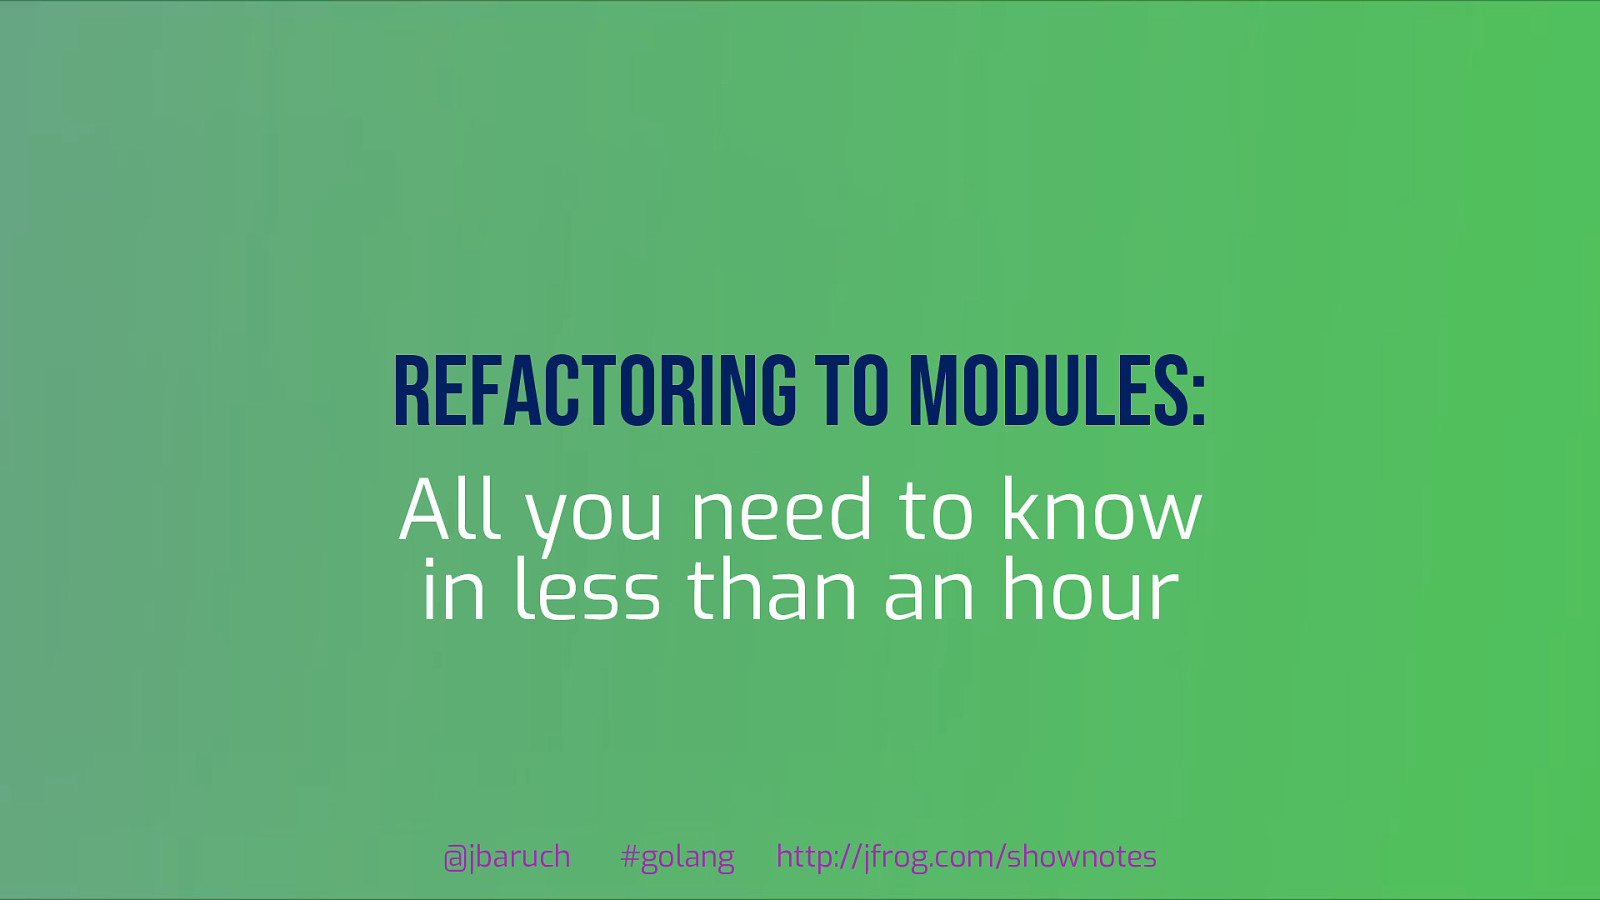 Refactoring to modules: Why and how – all you need to know in (less than) an hour